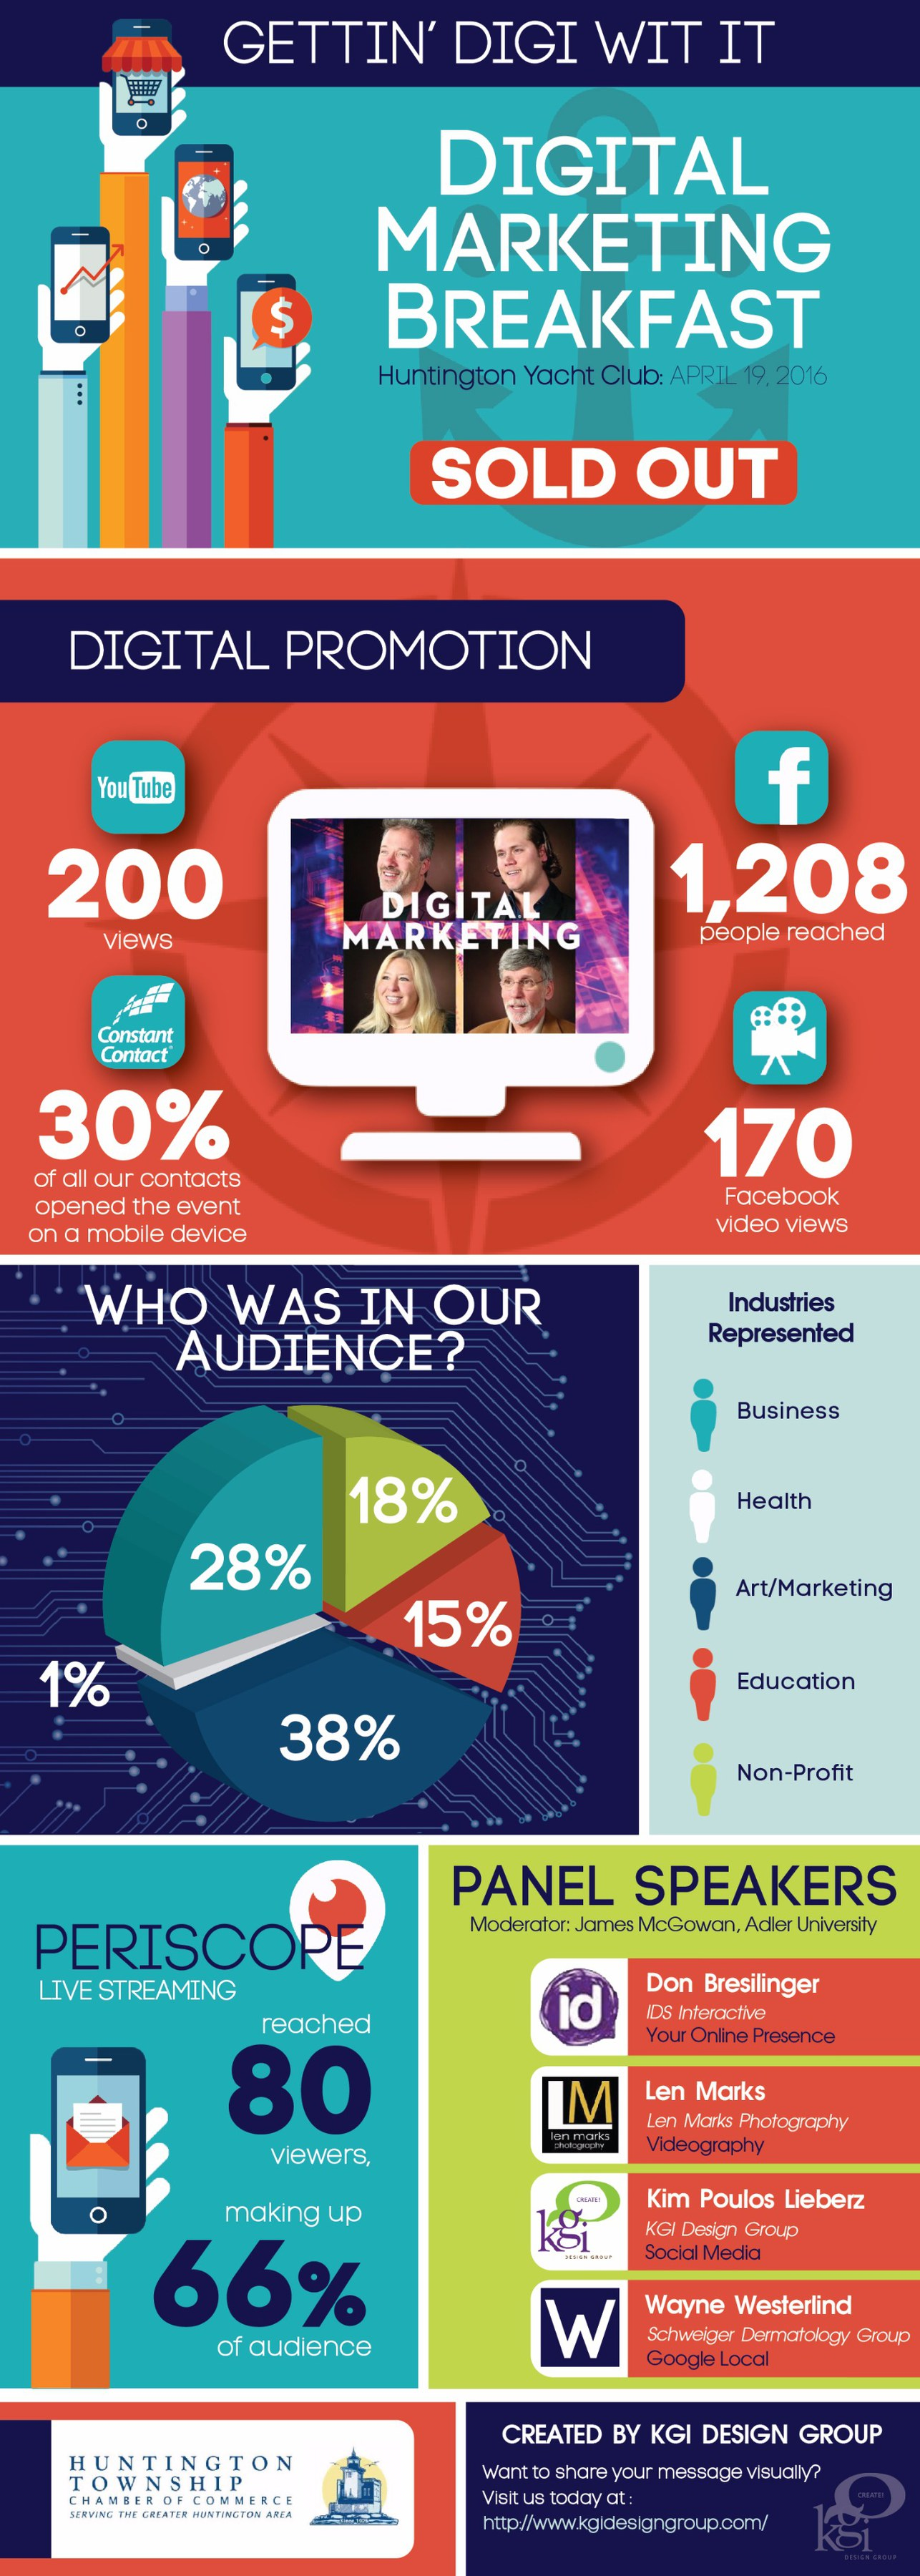 20160705191128-3366105-digital-marketing-breakfast-infographic.jpg